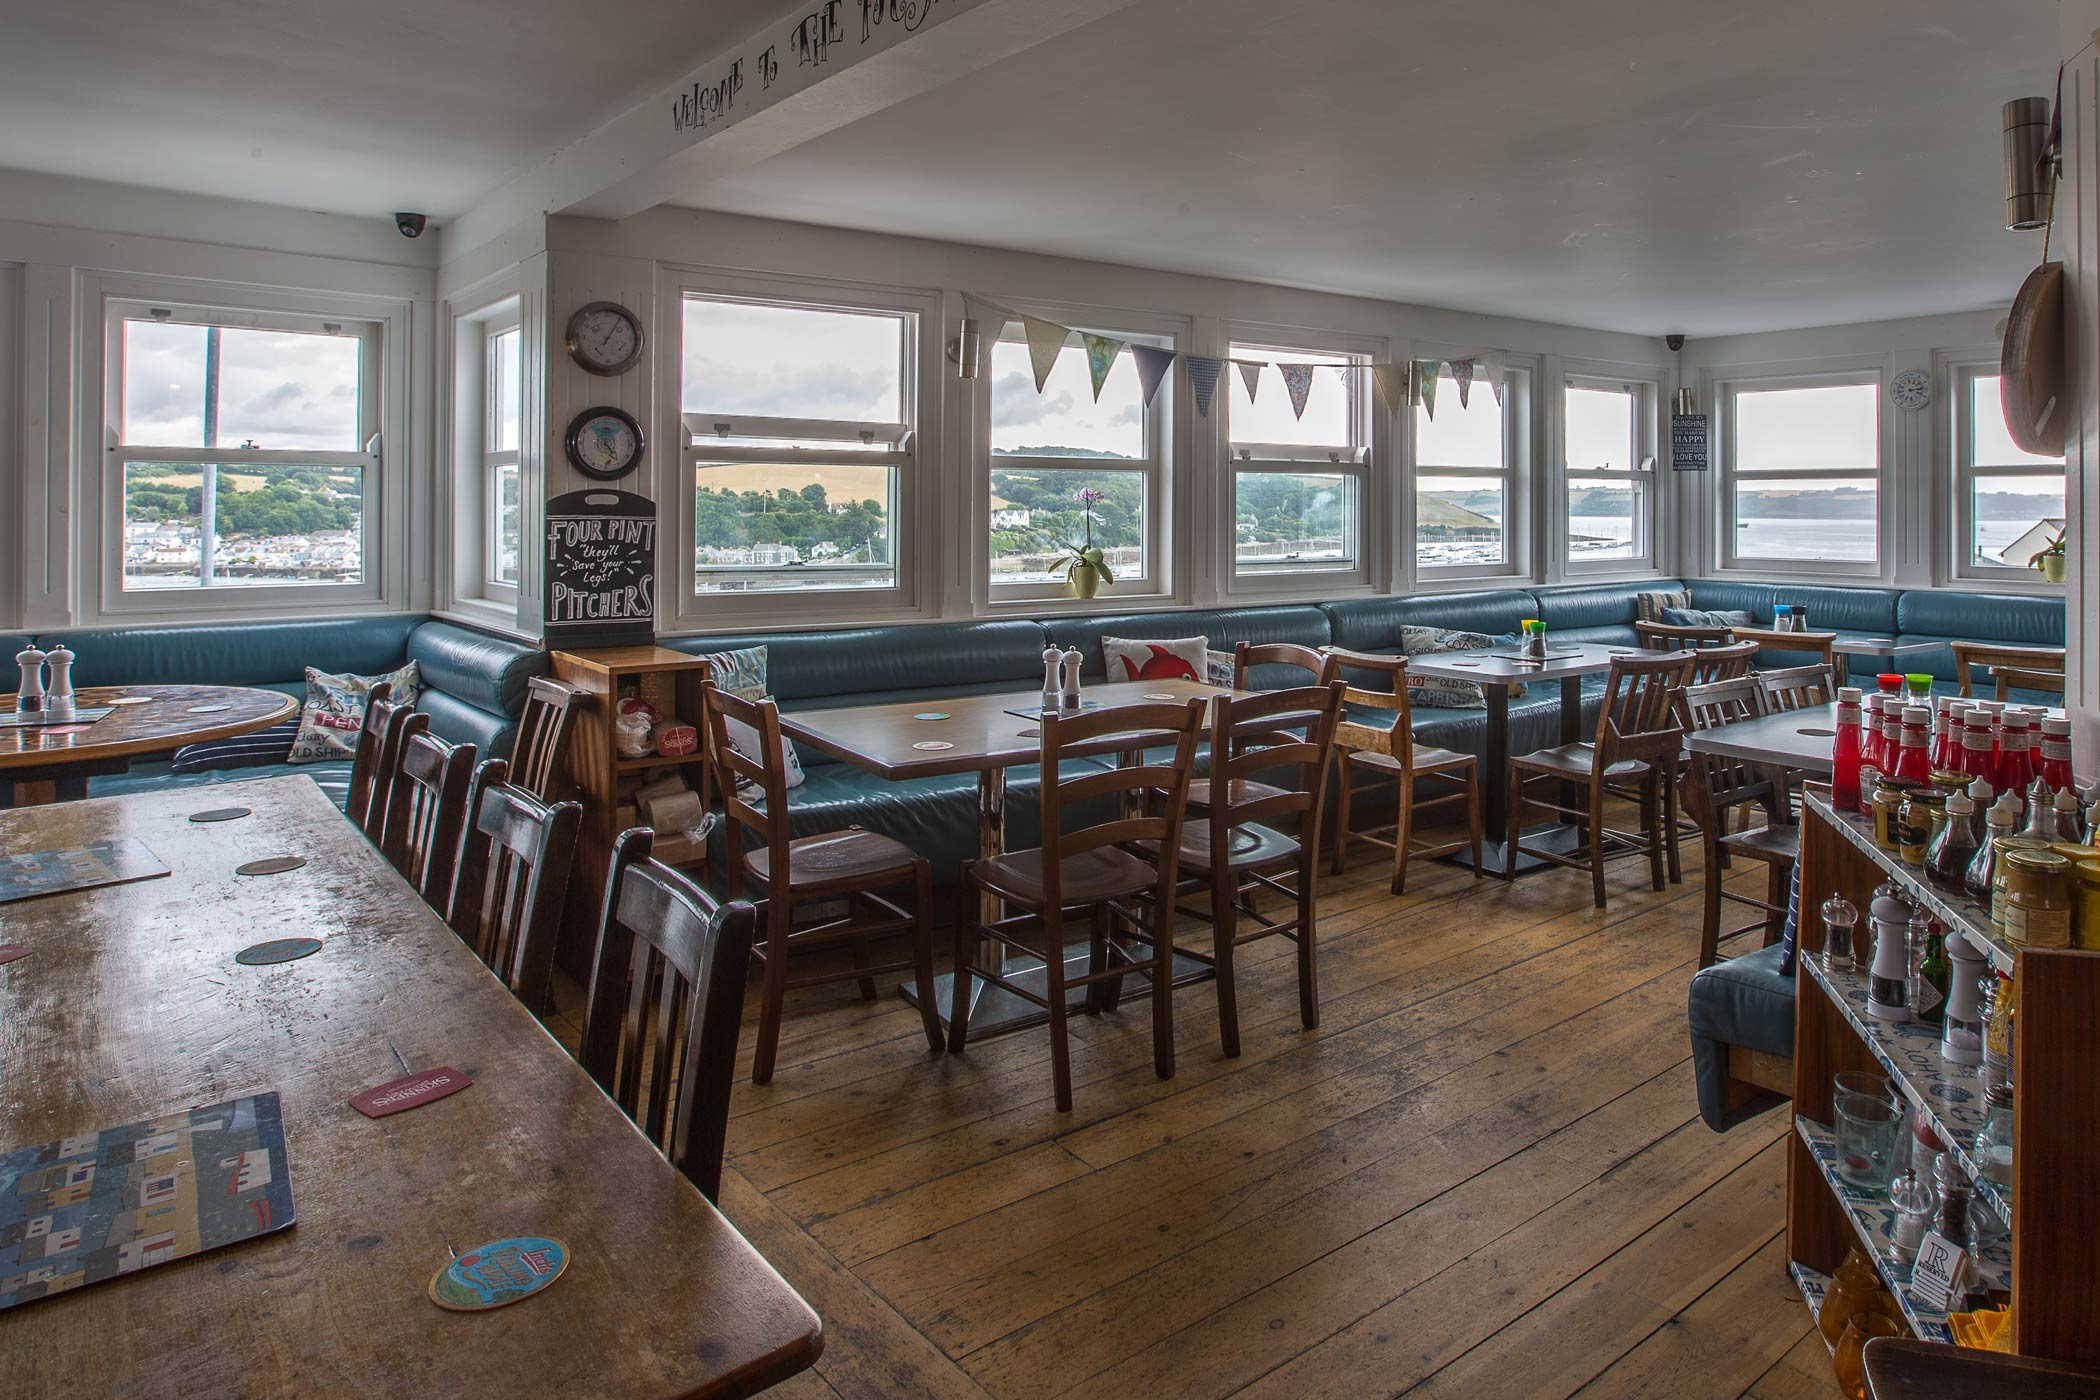 Falmouths Best Sea View Pub And Restaurant The Boathouse